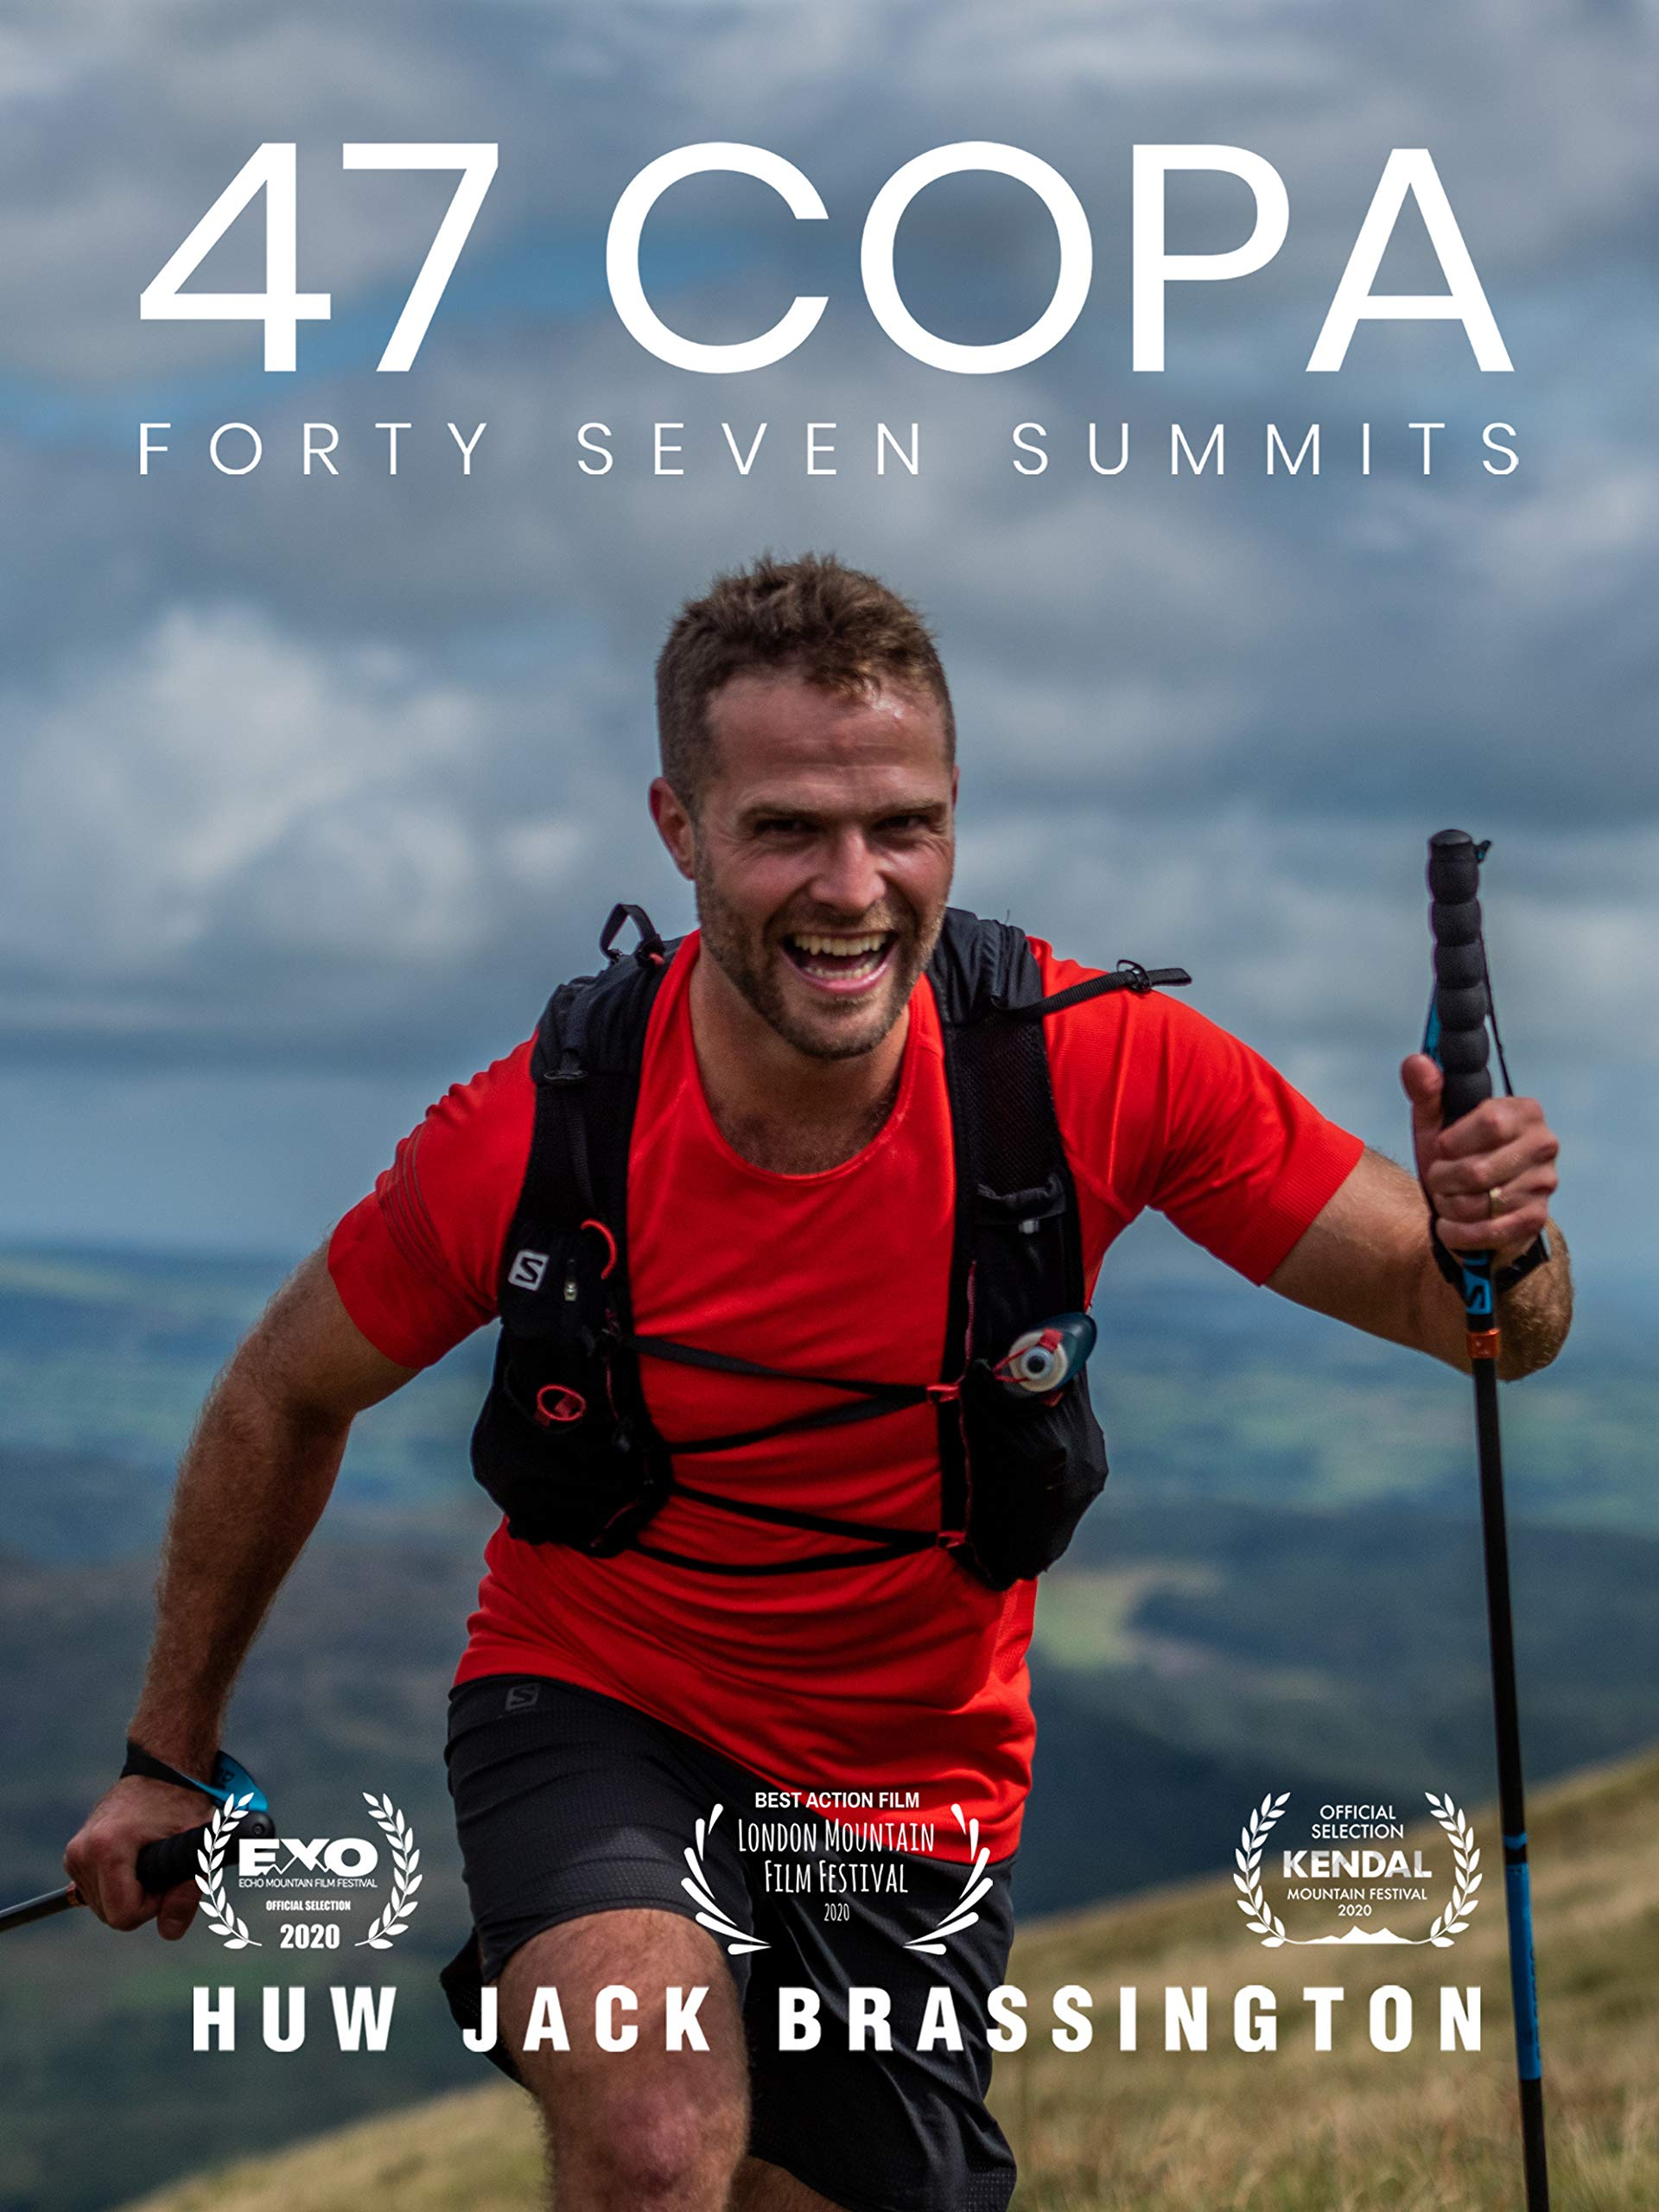 47 COPA | Forty Seven Summits on Amazon Prime Video UK